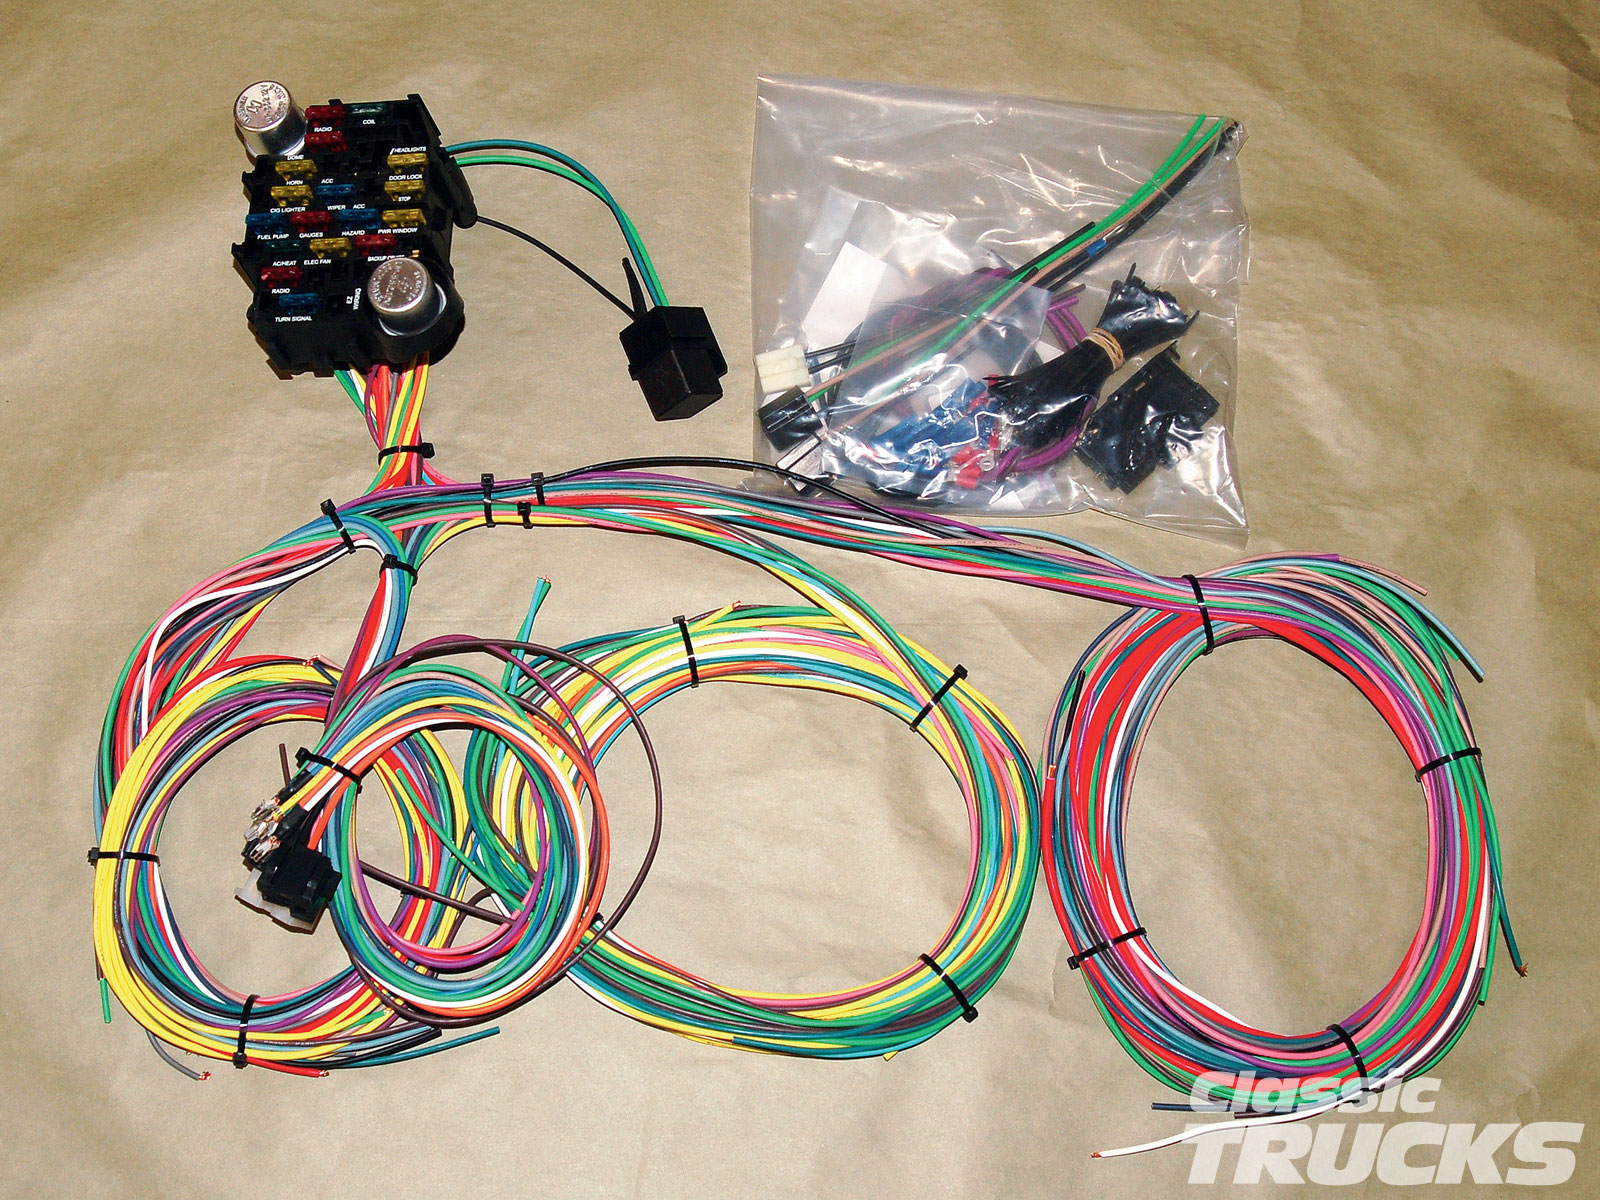 1010clt 02 o aftermarket wiring harness install kit?resize=640%2C480 diy wiring harness hobbiesxstyle diy wiring harness at gsmx.co